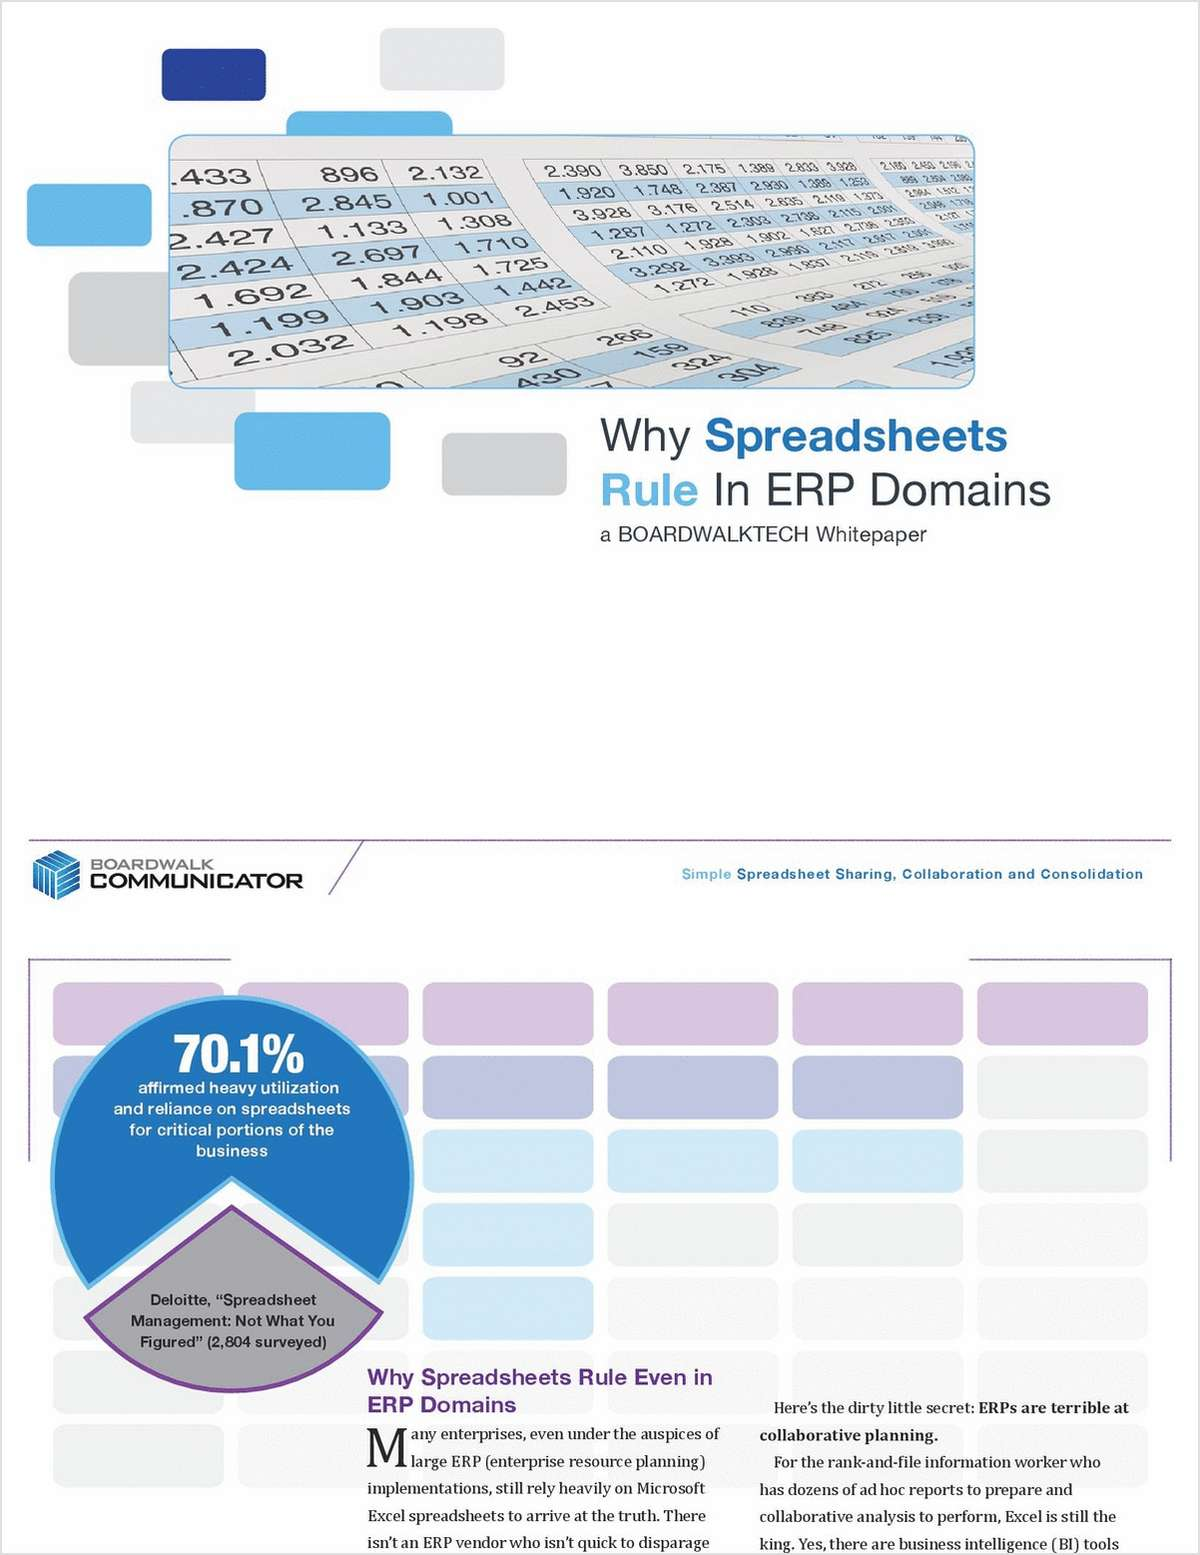 Why do spreadsheets rule even in erp environments free boardwalktech inc white paper